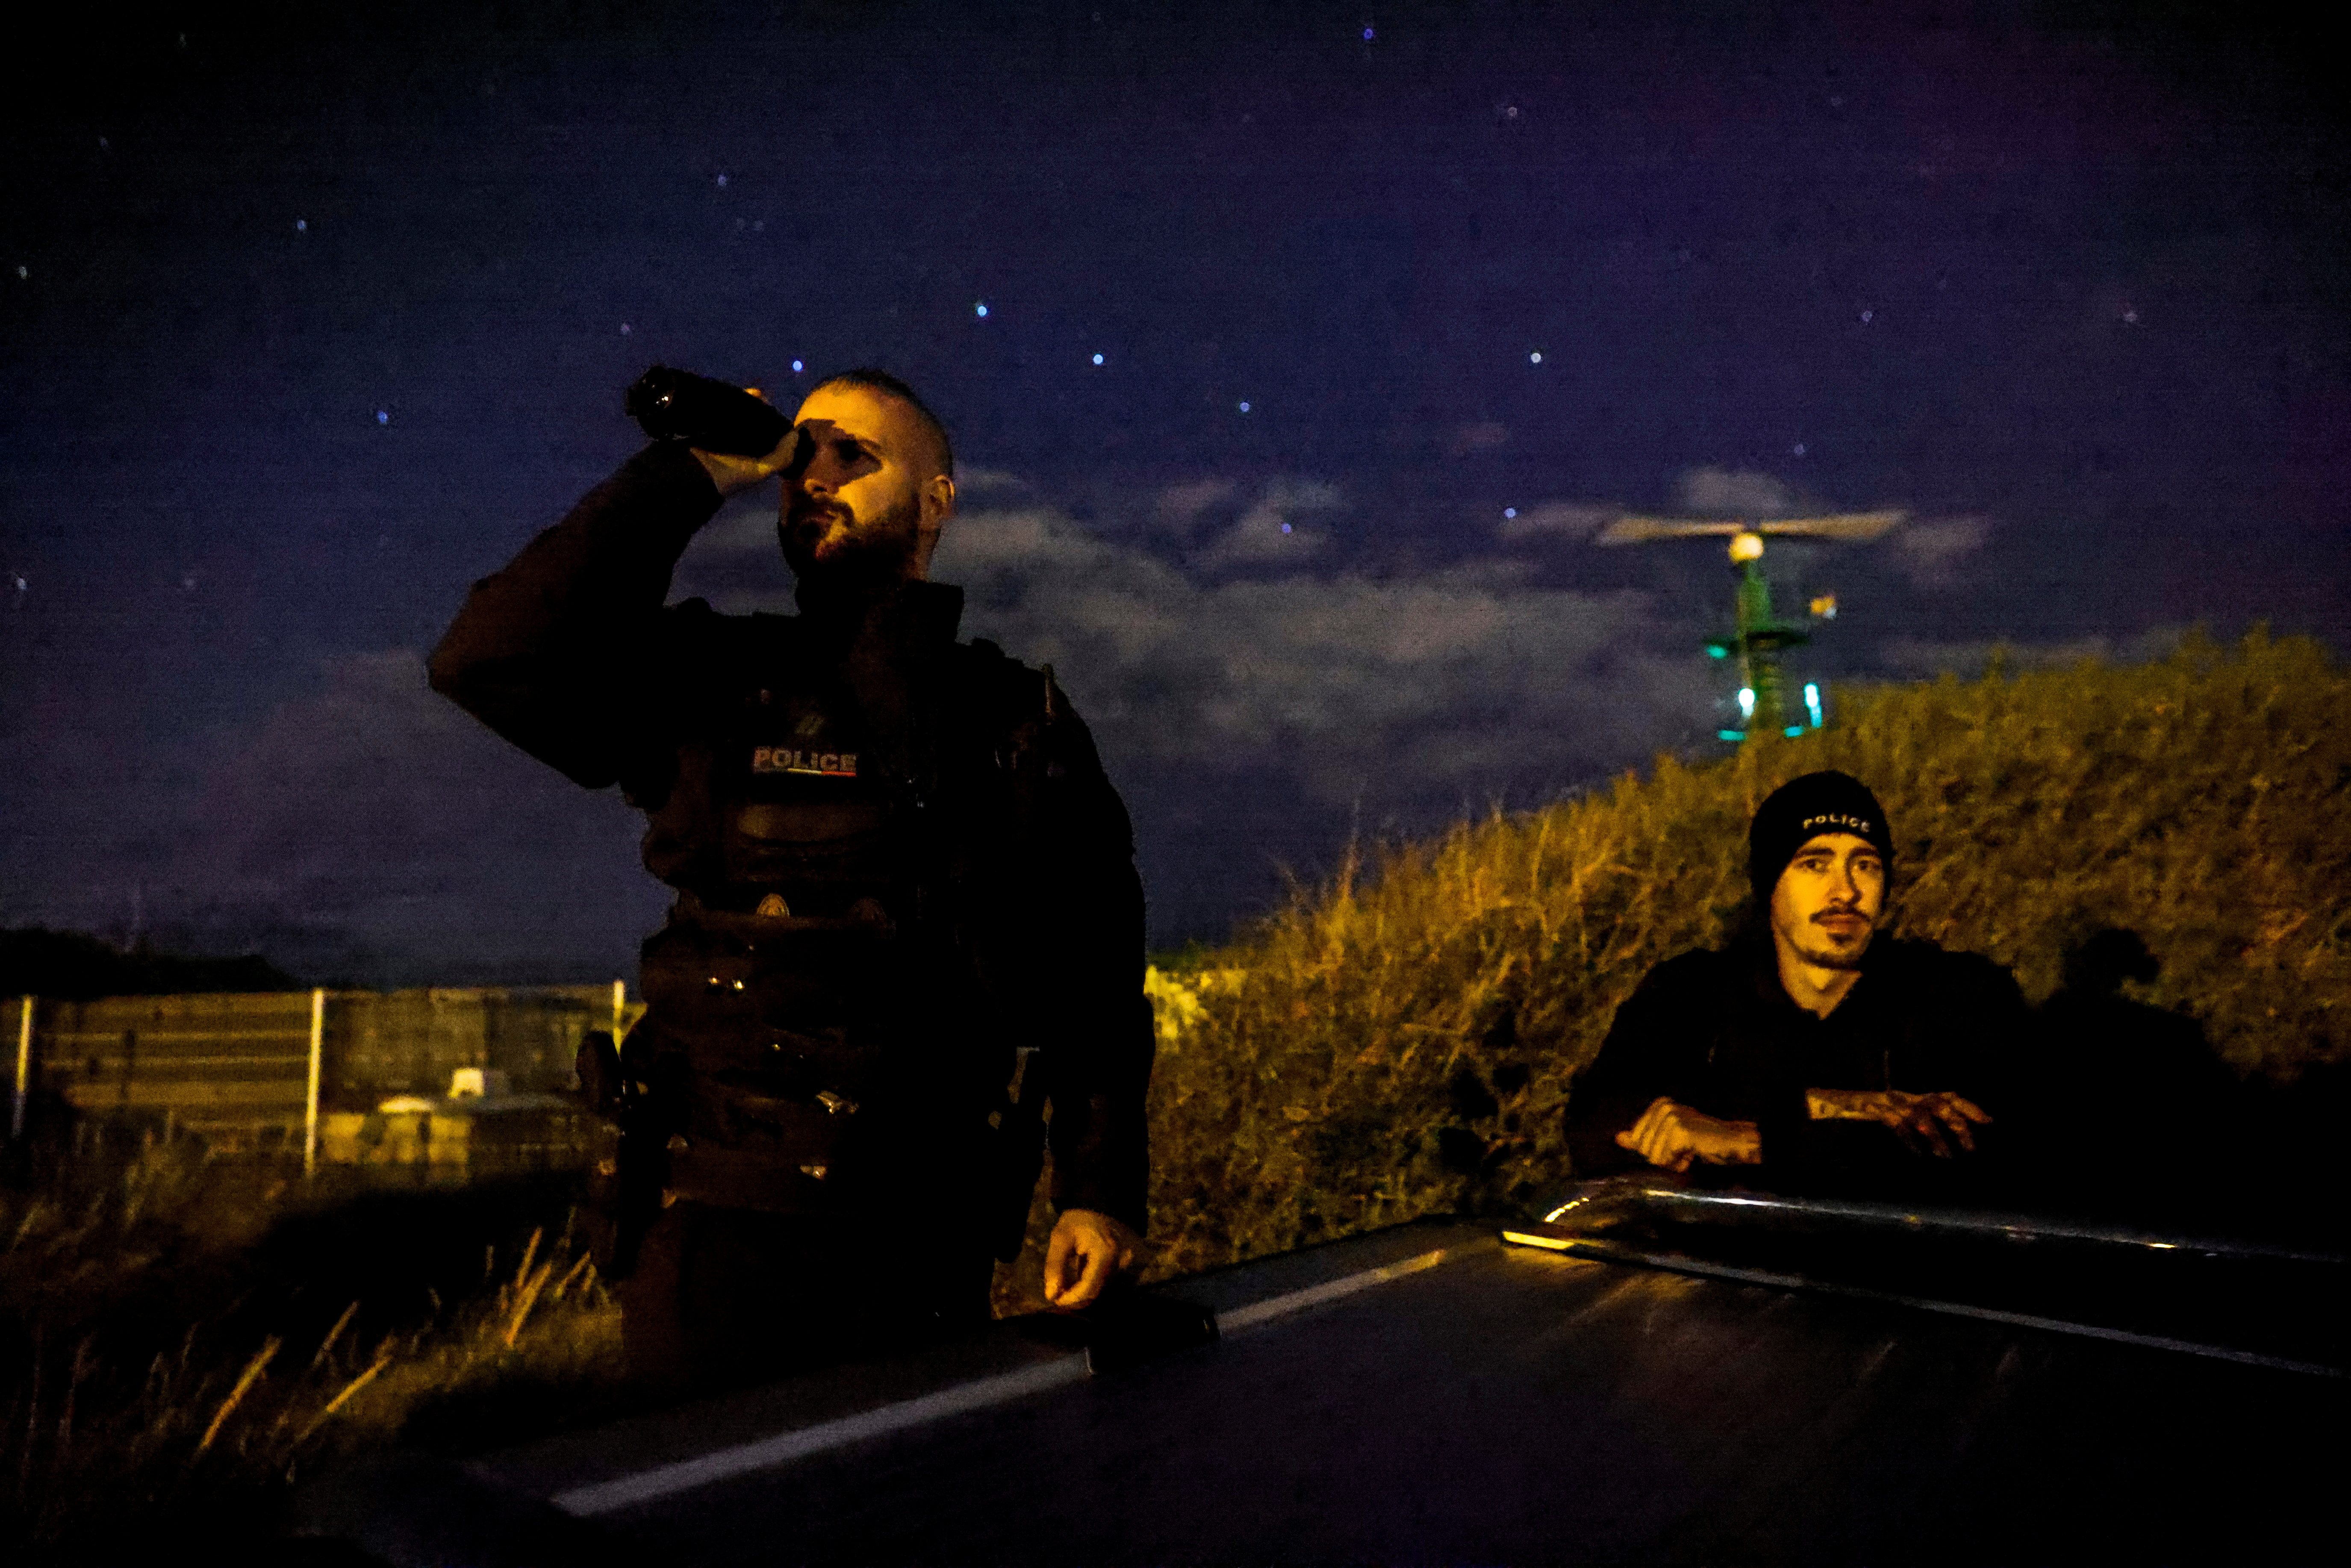 A police officer uses a light intensification monocular as he patrols along the French coast in Sangatte, France, August 4, 2021. REUTERS/Pascal Rossignol